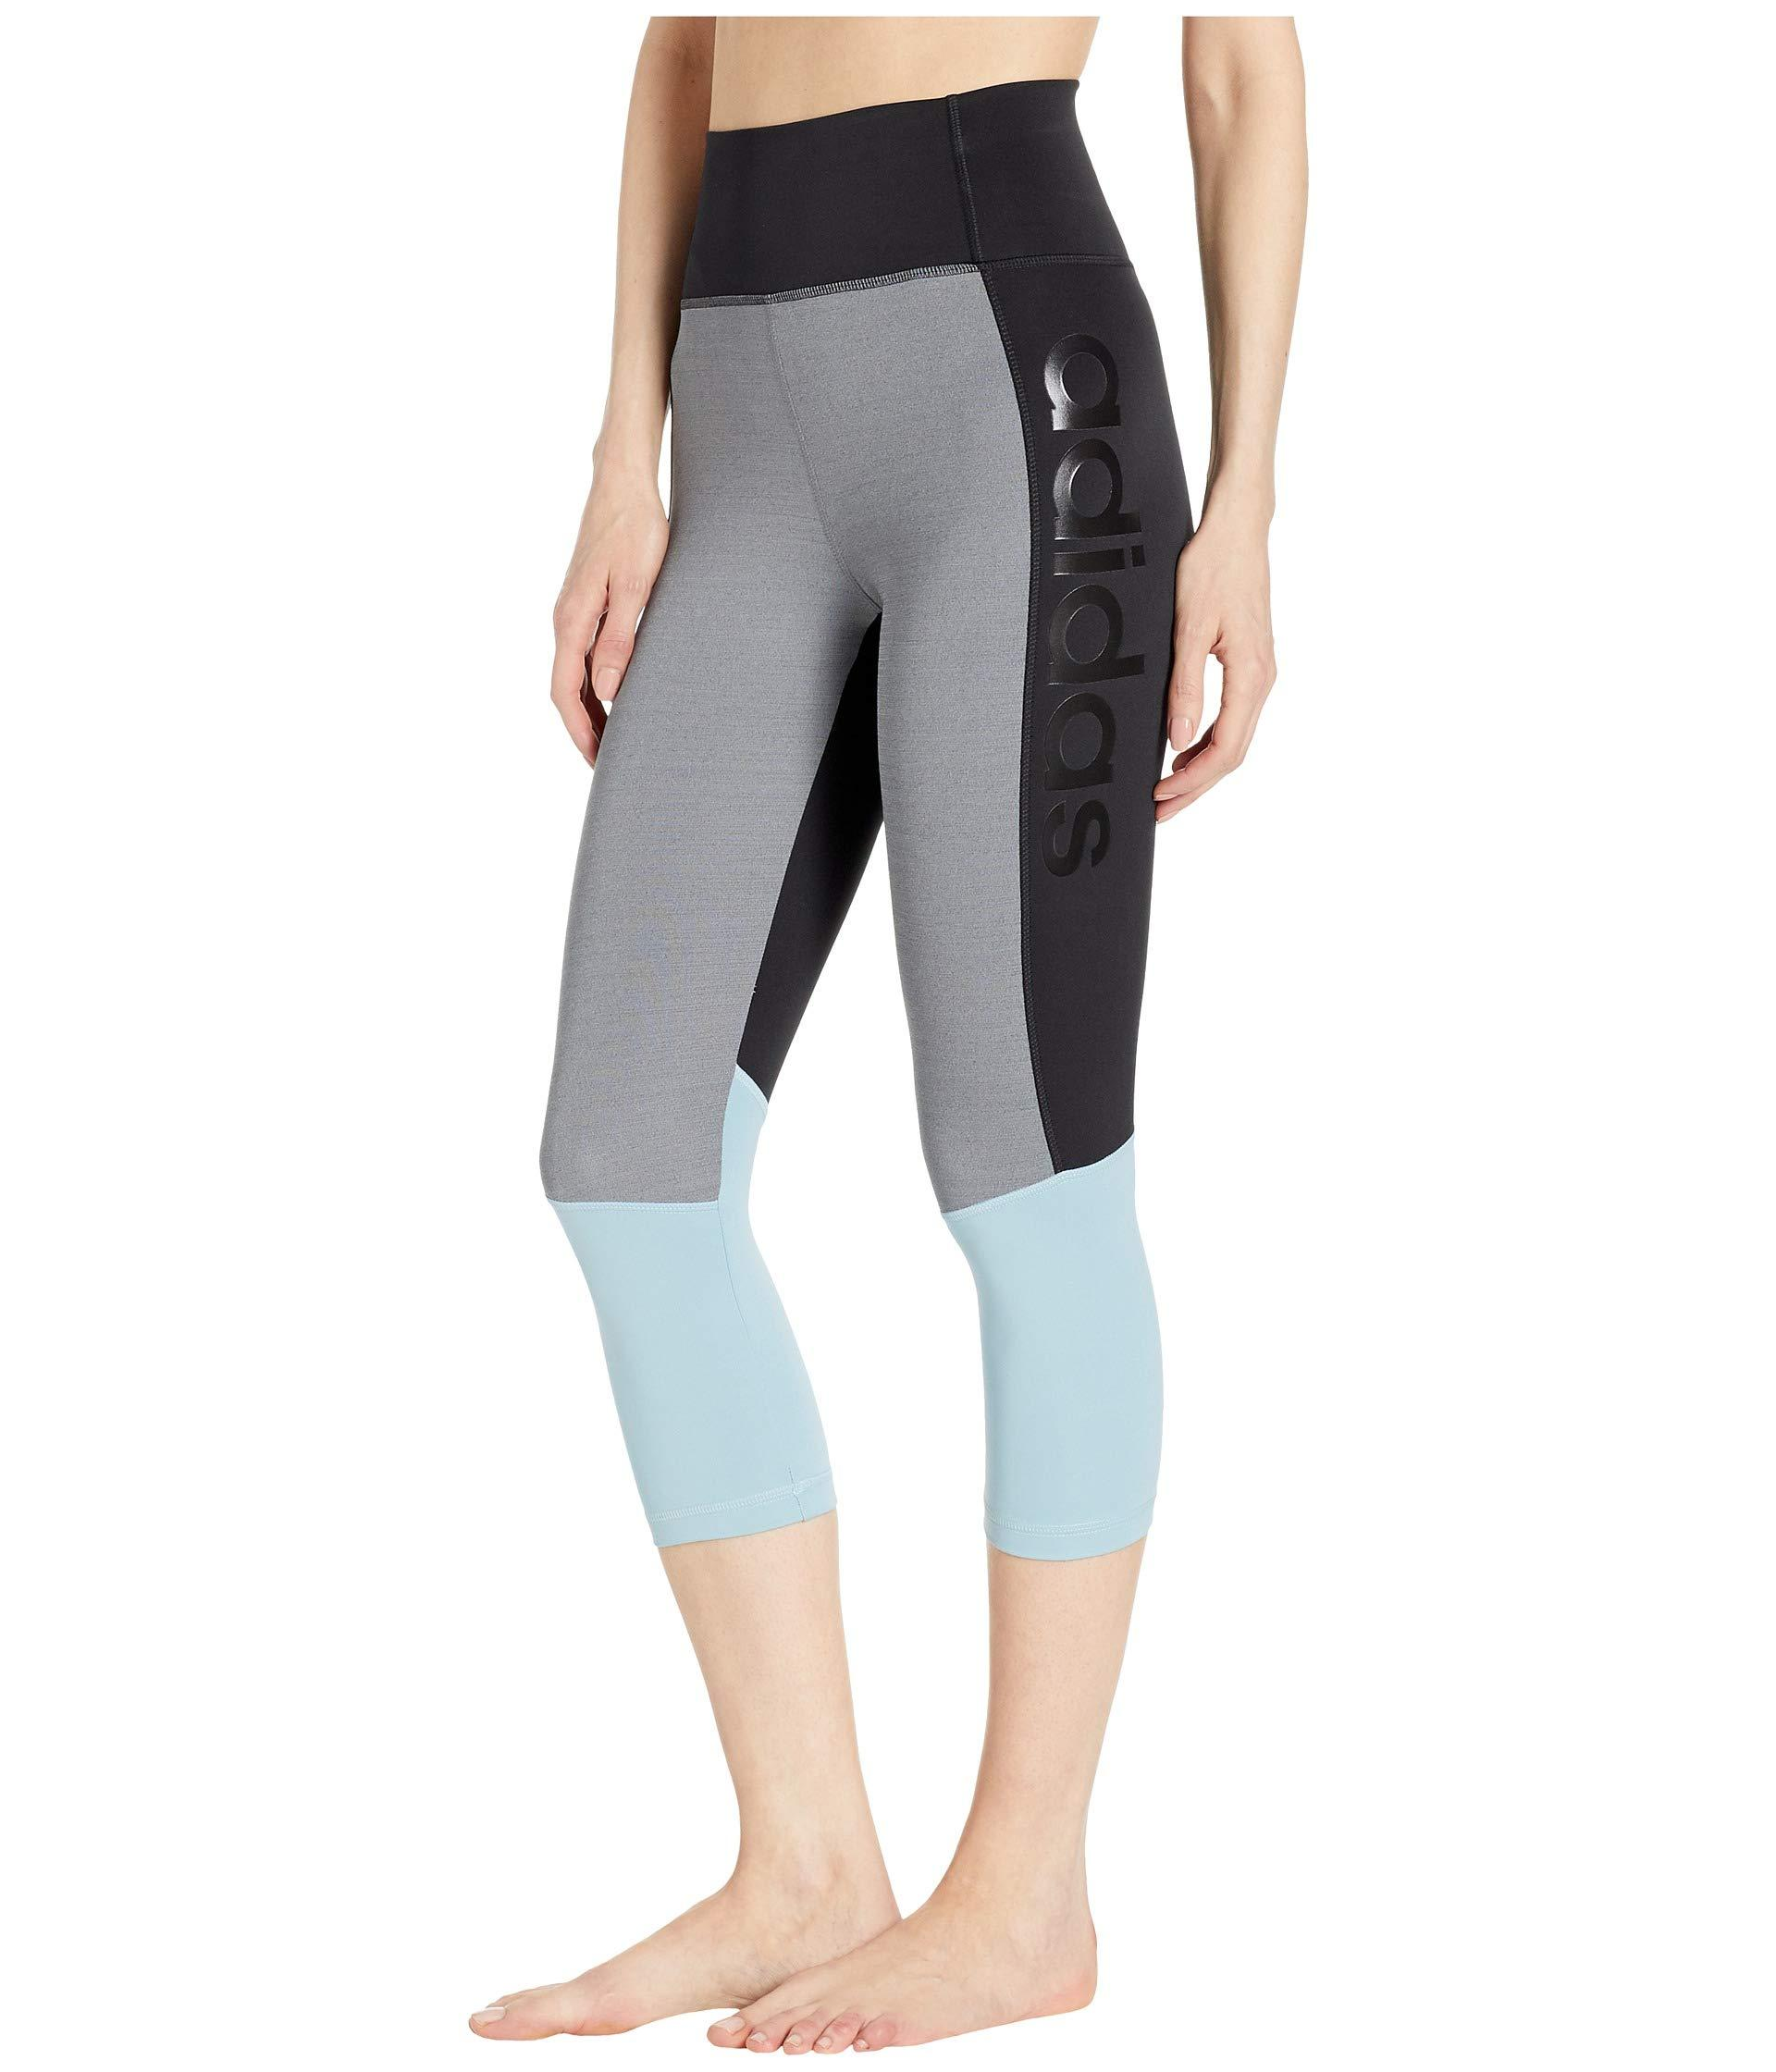 ced193cb8b0 adidas Designed-2-move High-rise 3 4 Tights in Black - Lyst